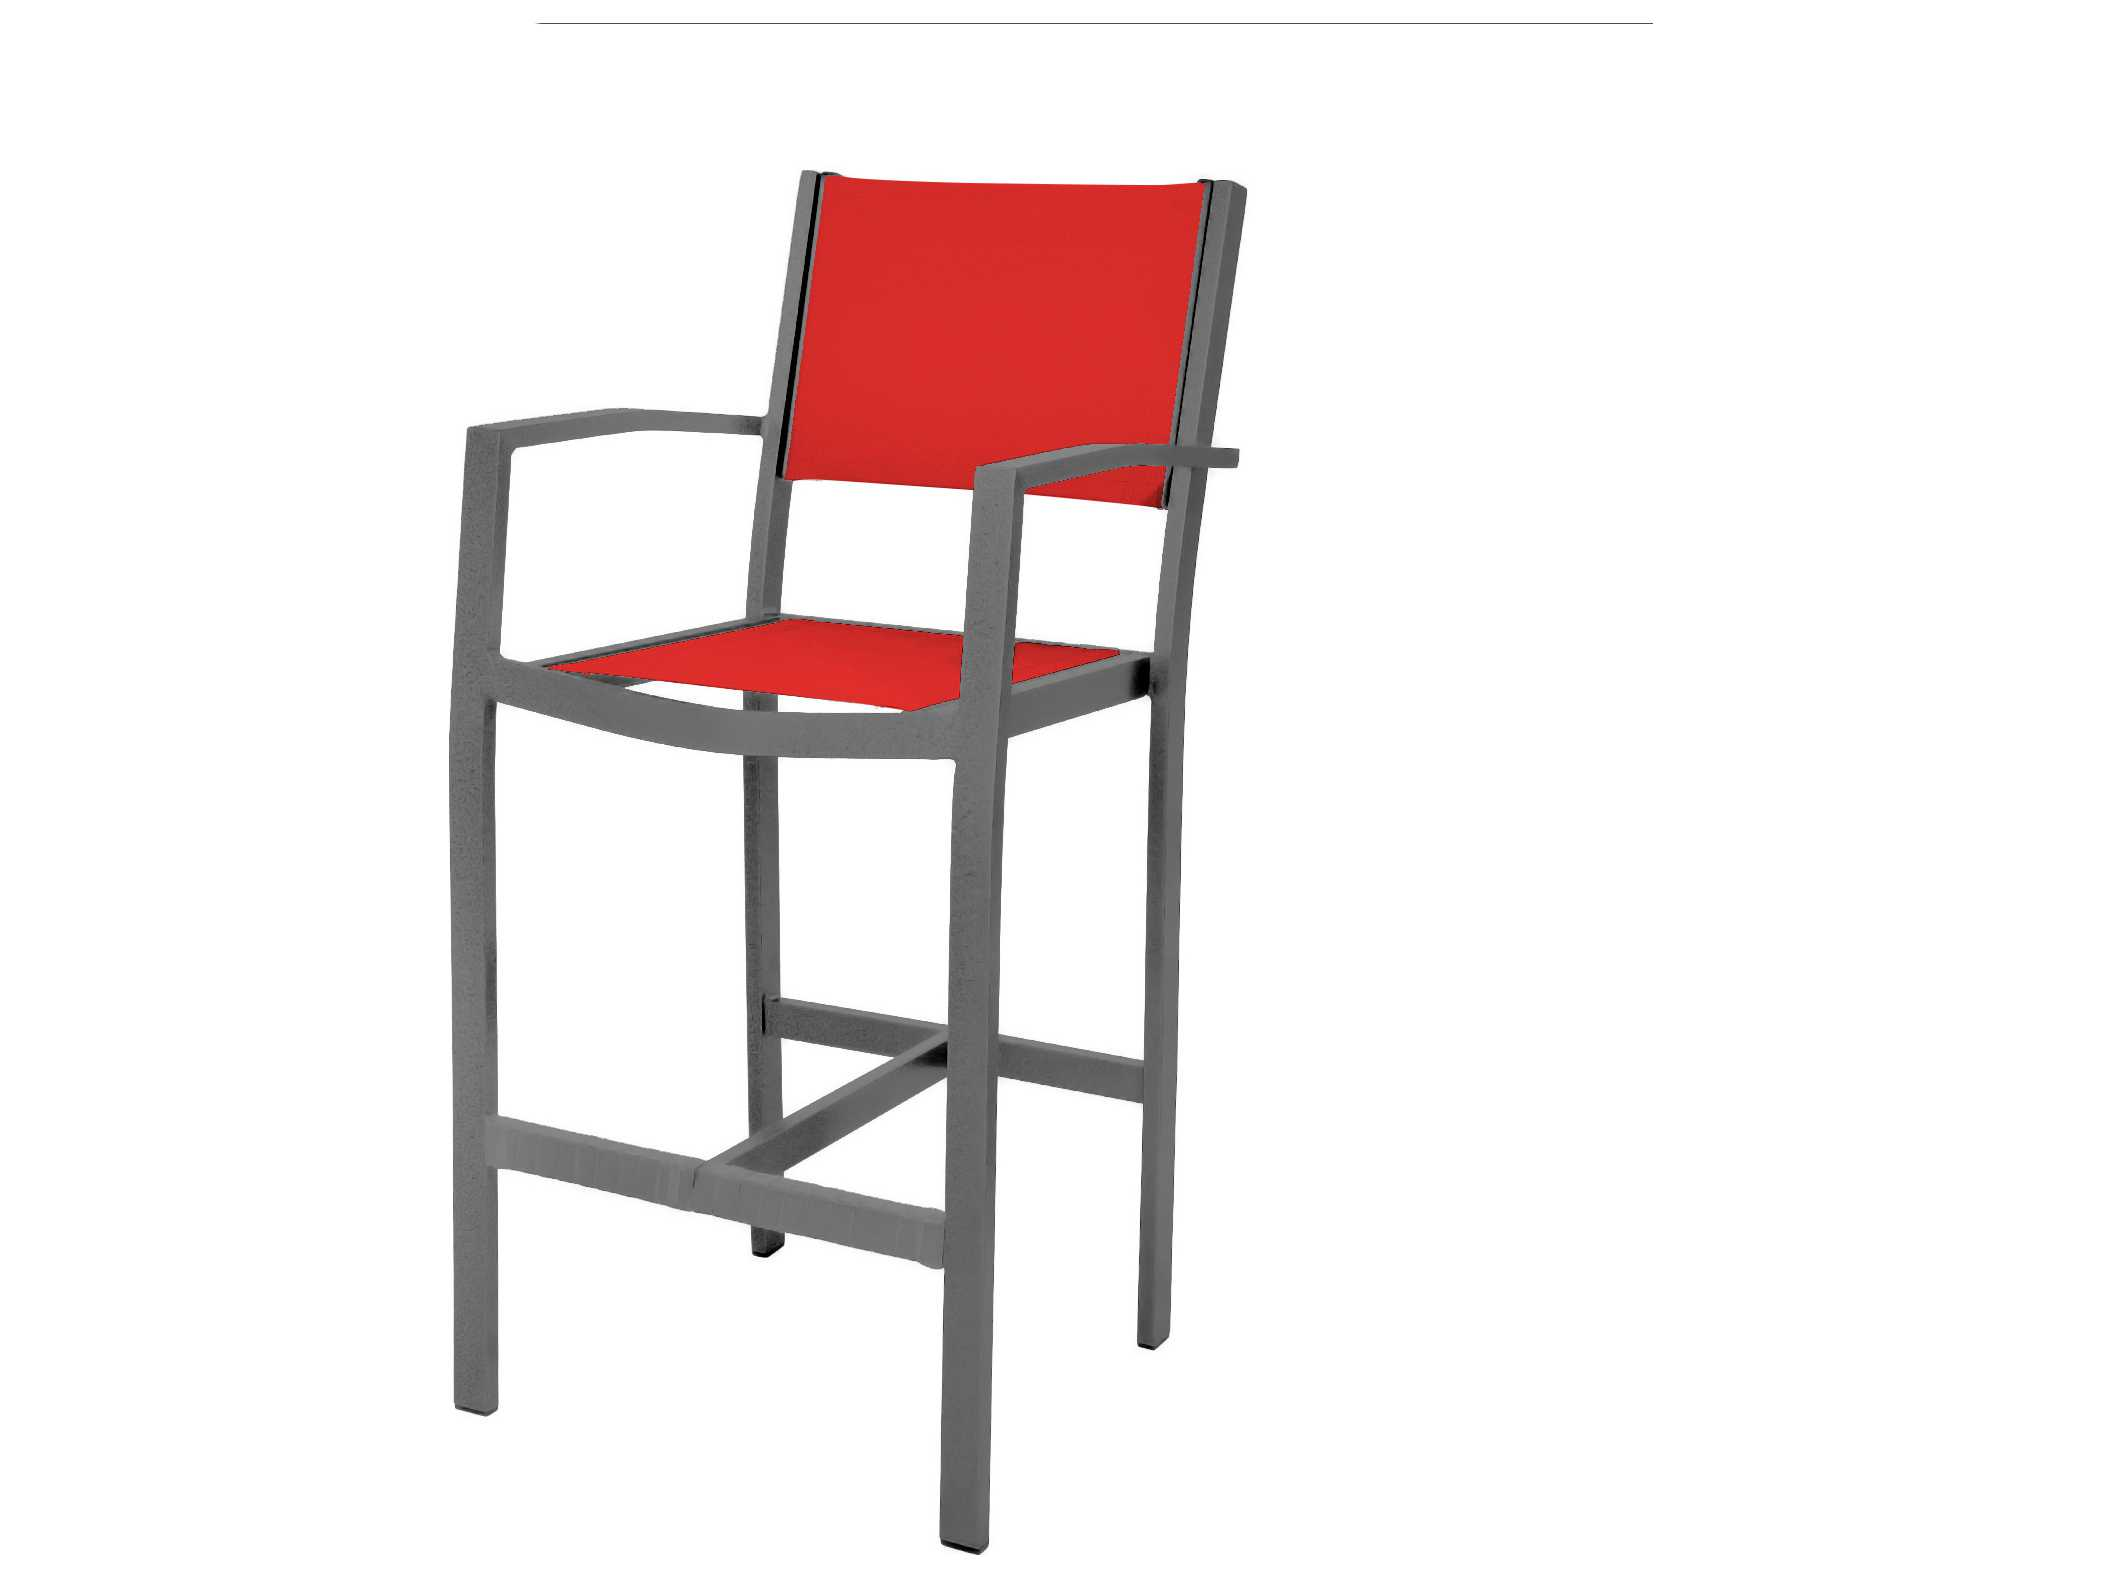 Source Outdoor Furniture Fusion Aluminum Bar Arm Chair  : SCSO30011735zm from www.patioliving.com size 2103 x 1578 jpeg 51kB